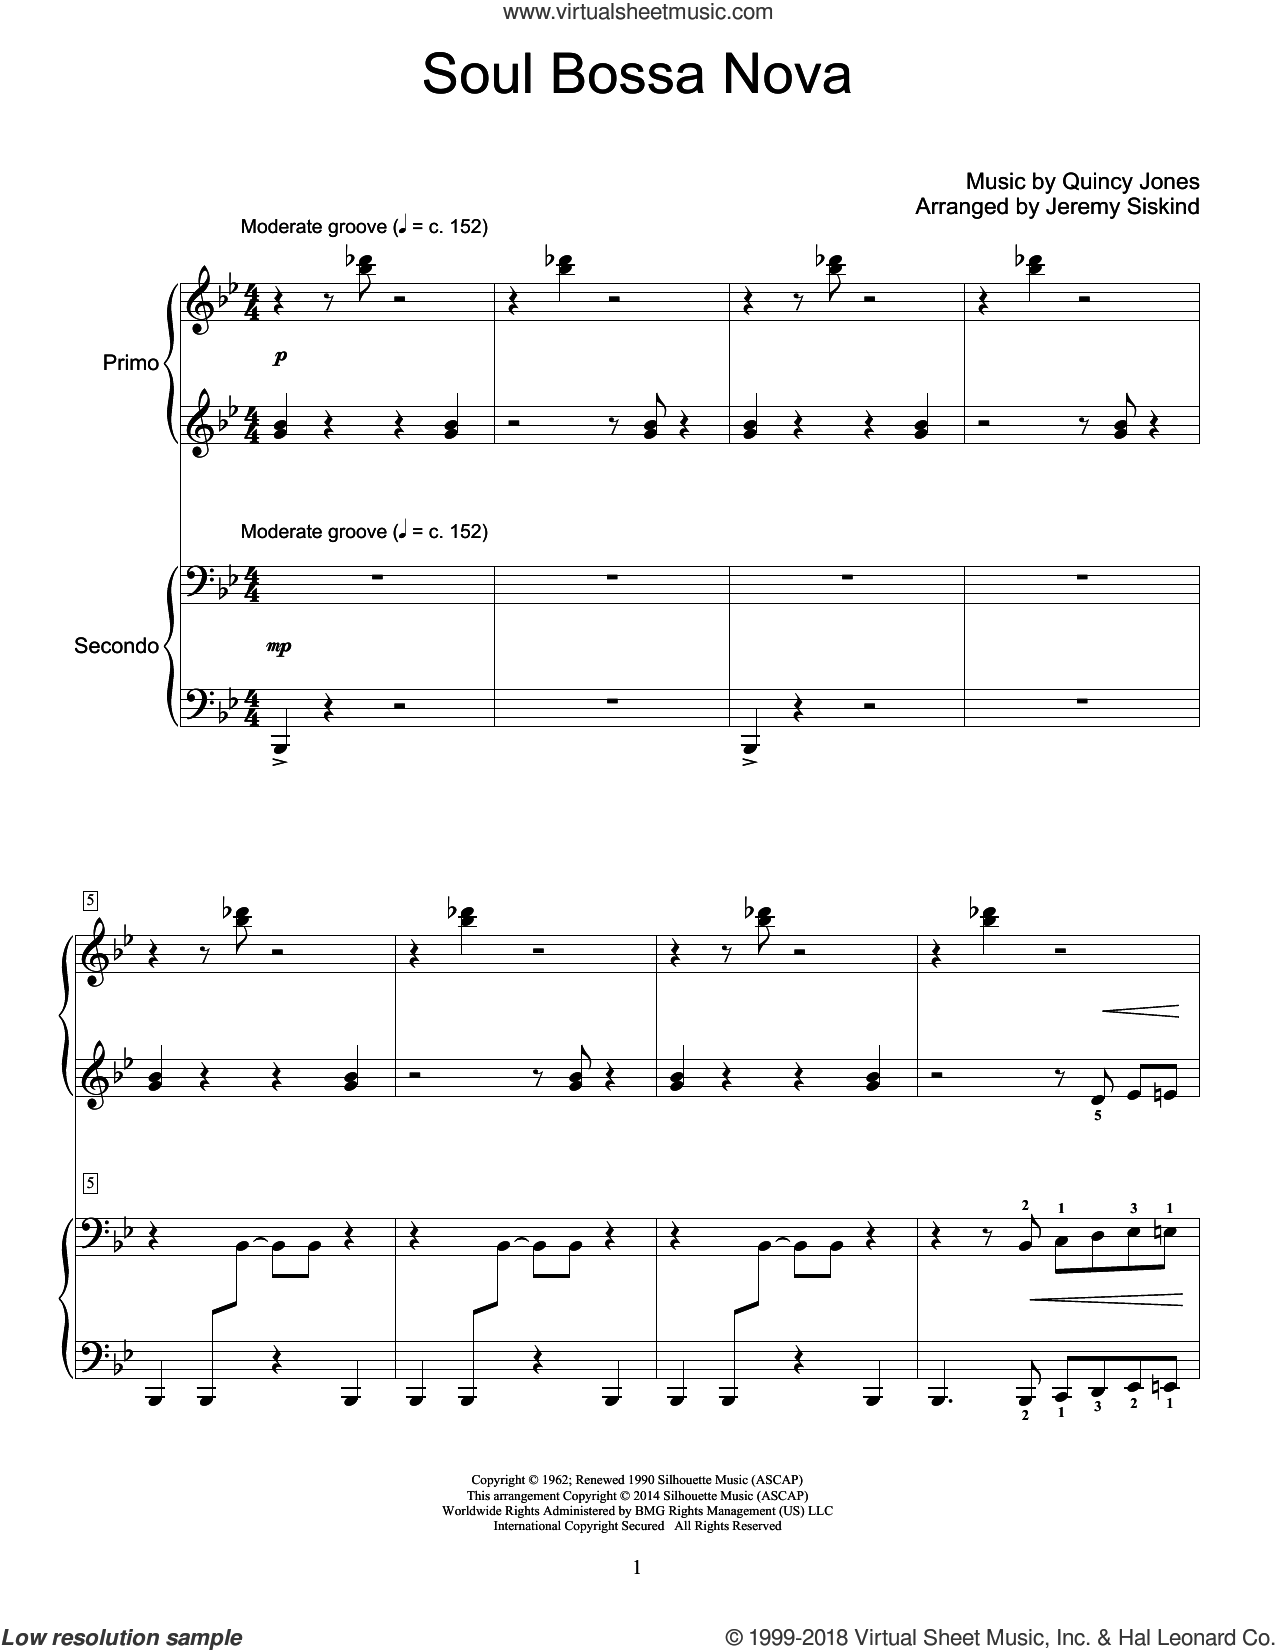 Soul Bossa Nova sheet music for piano four hands (duets) by Jeremy Siskind and Quincy Jones. Score Image Preview.